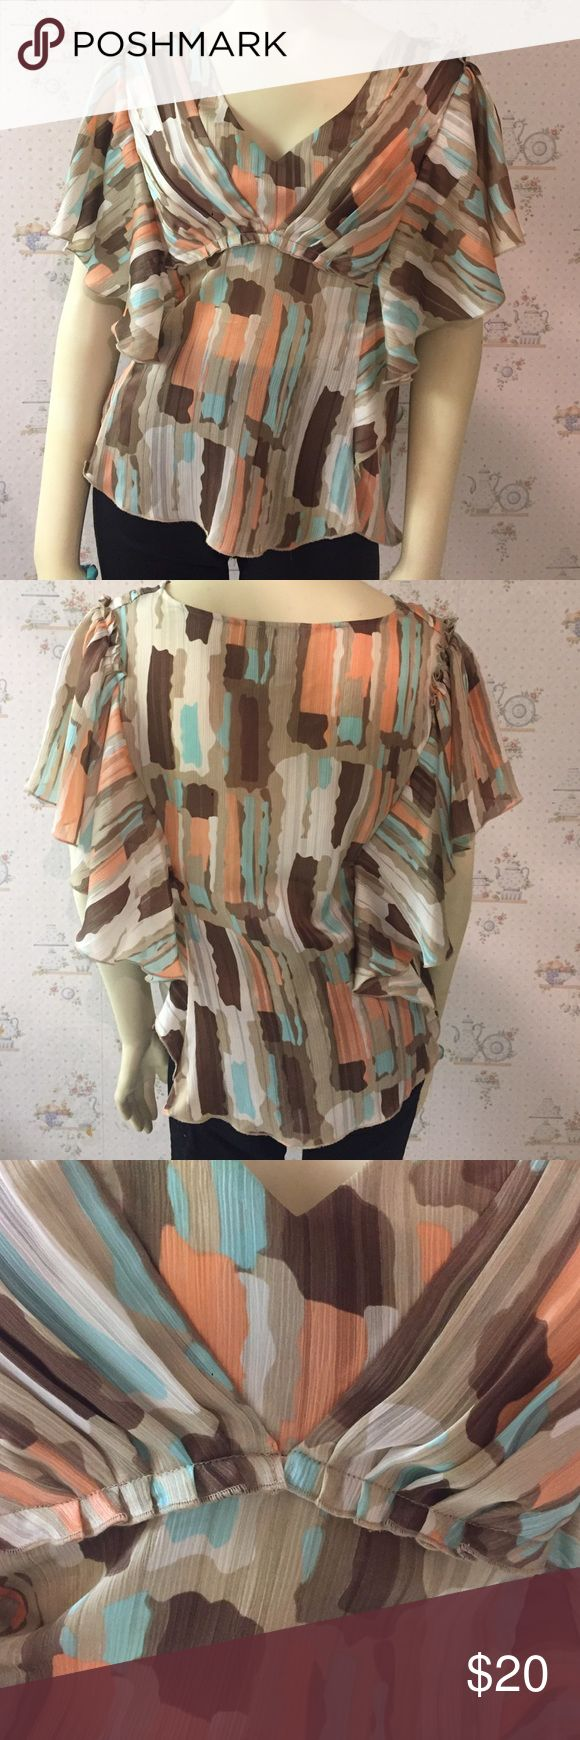 Multicolor BCBG Generation Short Sleeve Blouse This top is so figure flattering and sexy. Excellent pre owned condition. 100% Polyester. Side Zipper. Sheer but colors blend in with skin. Always wore a tan or nude bra underneath. Pair with skirt or skinnies. Bundle for additional discounts. No trades. BCBGeneration Tops Blouses